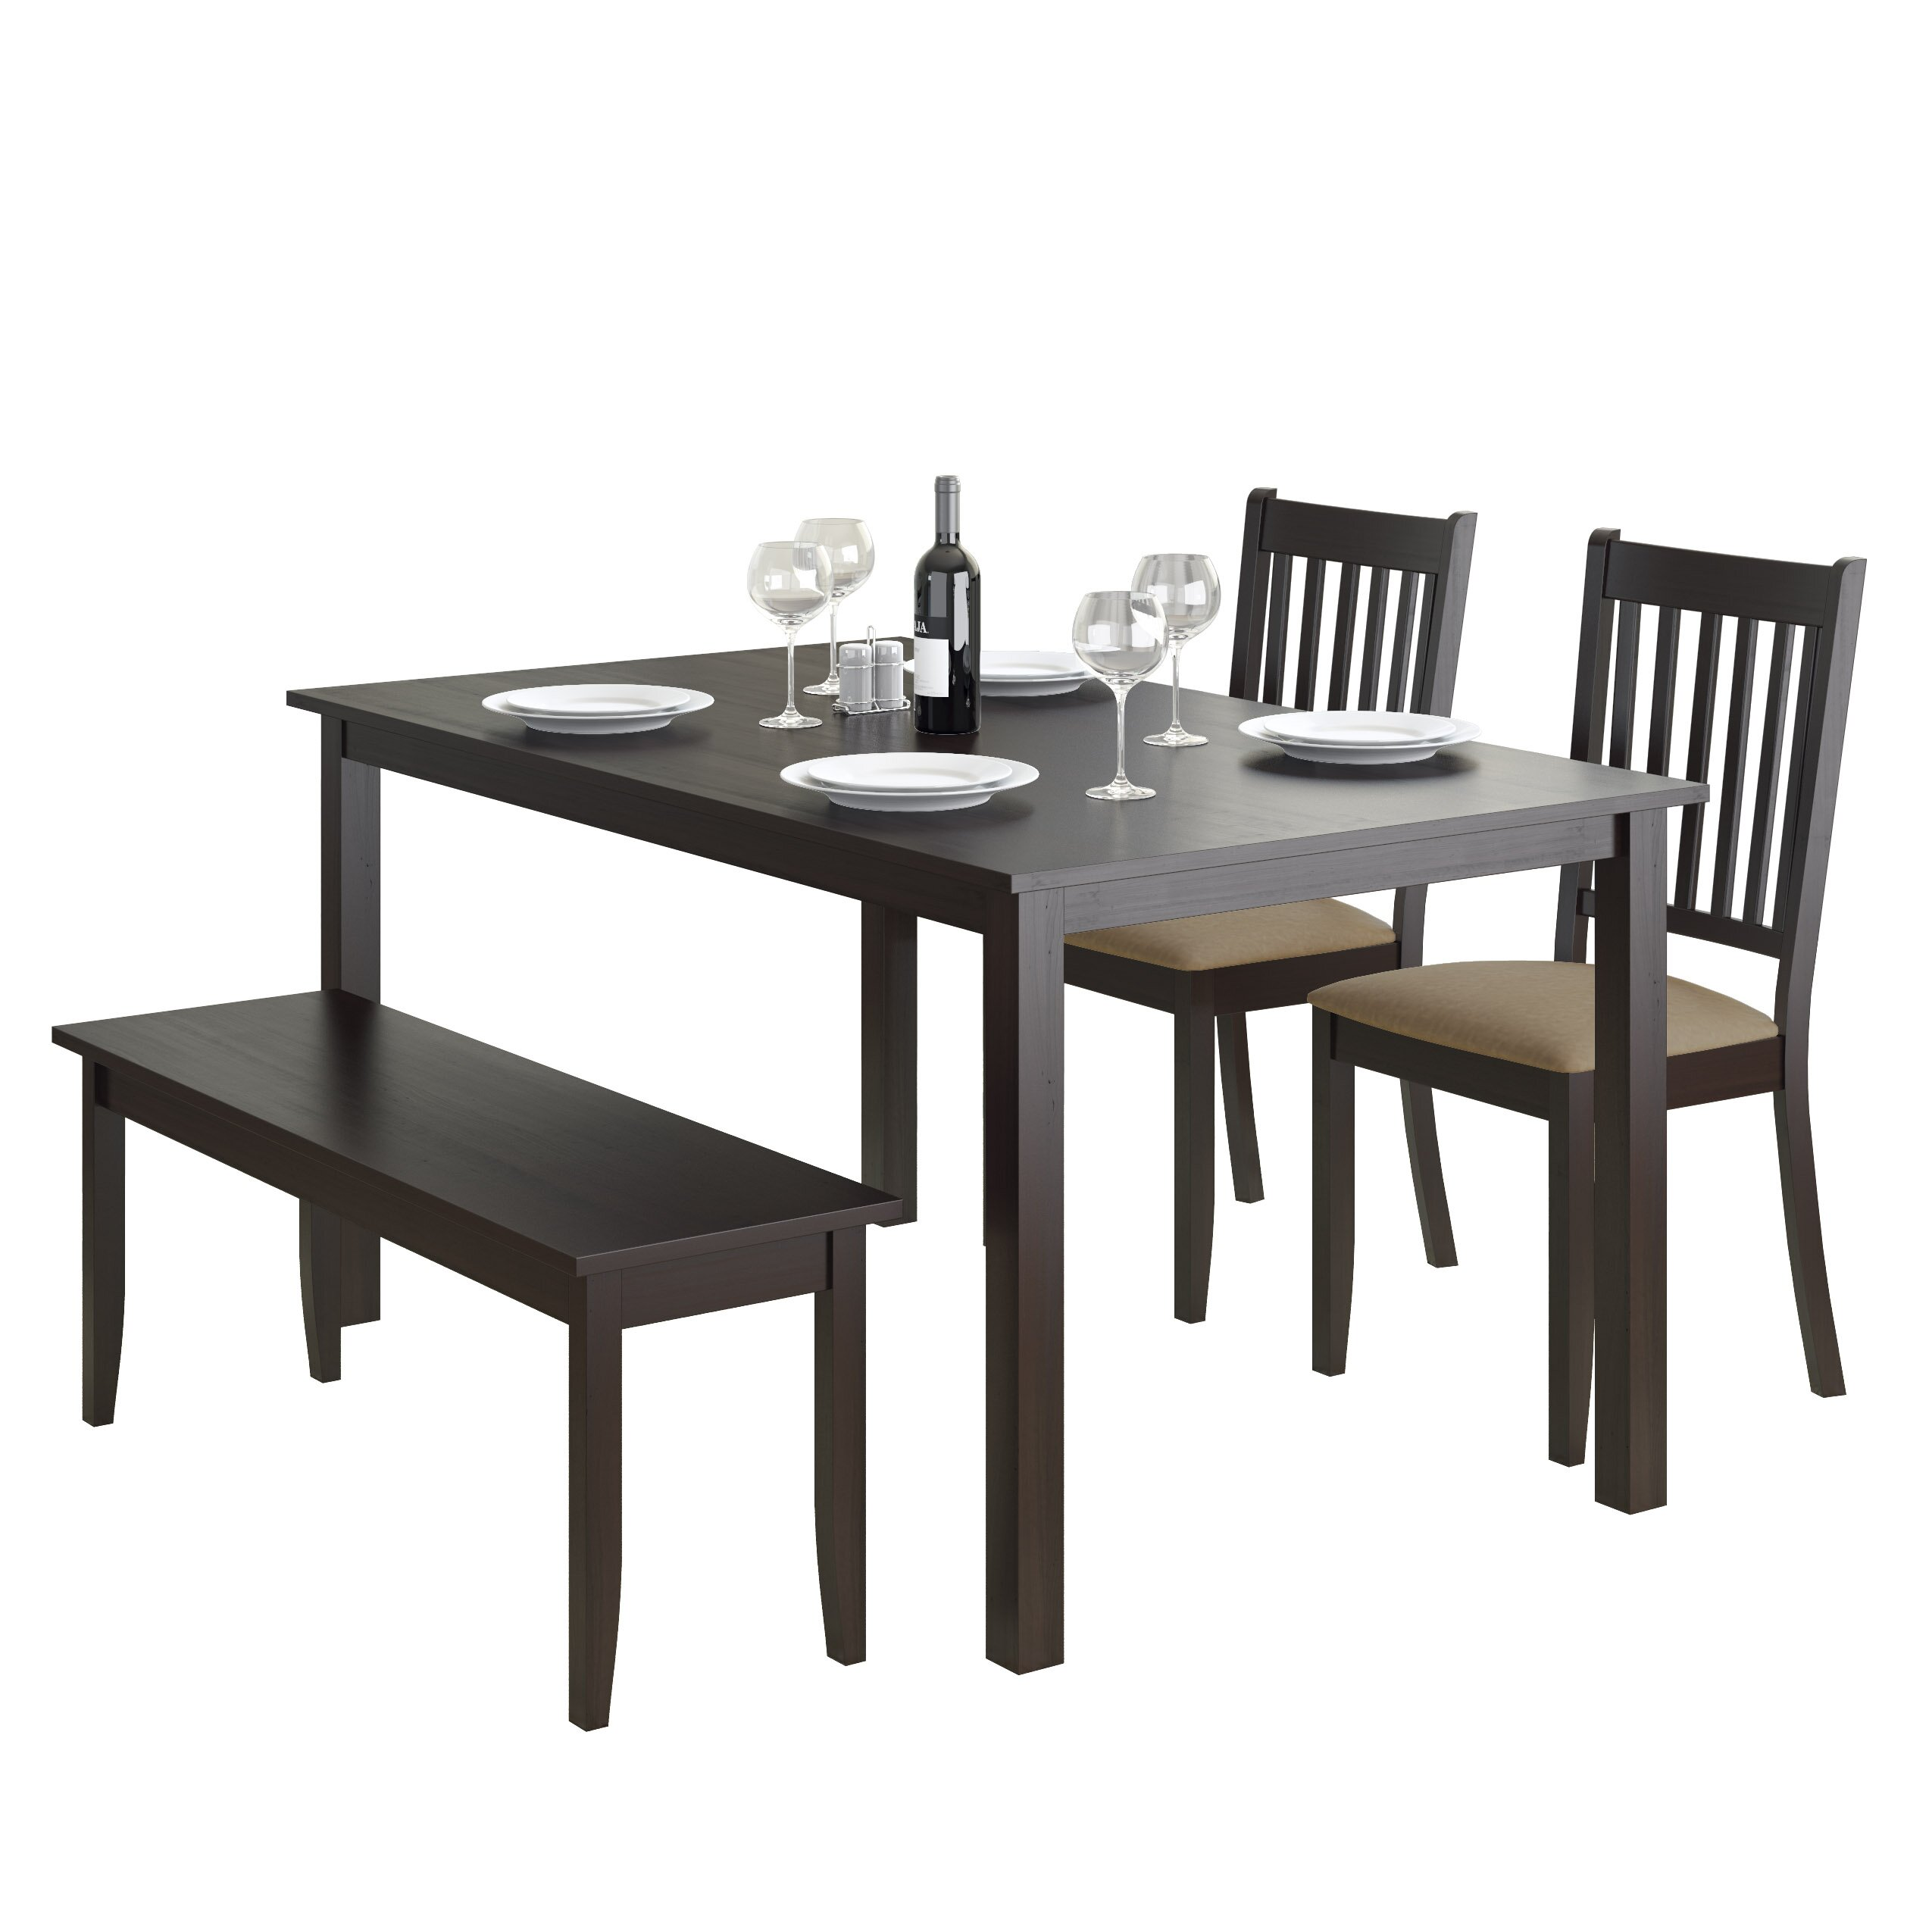 darby home co dunster  piece dining set  reviews  wayfair - darby home coreg dunster  piece dining set